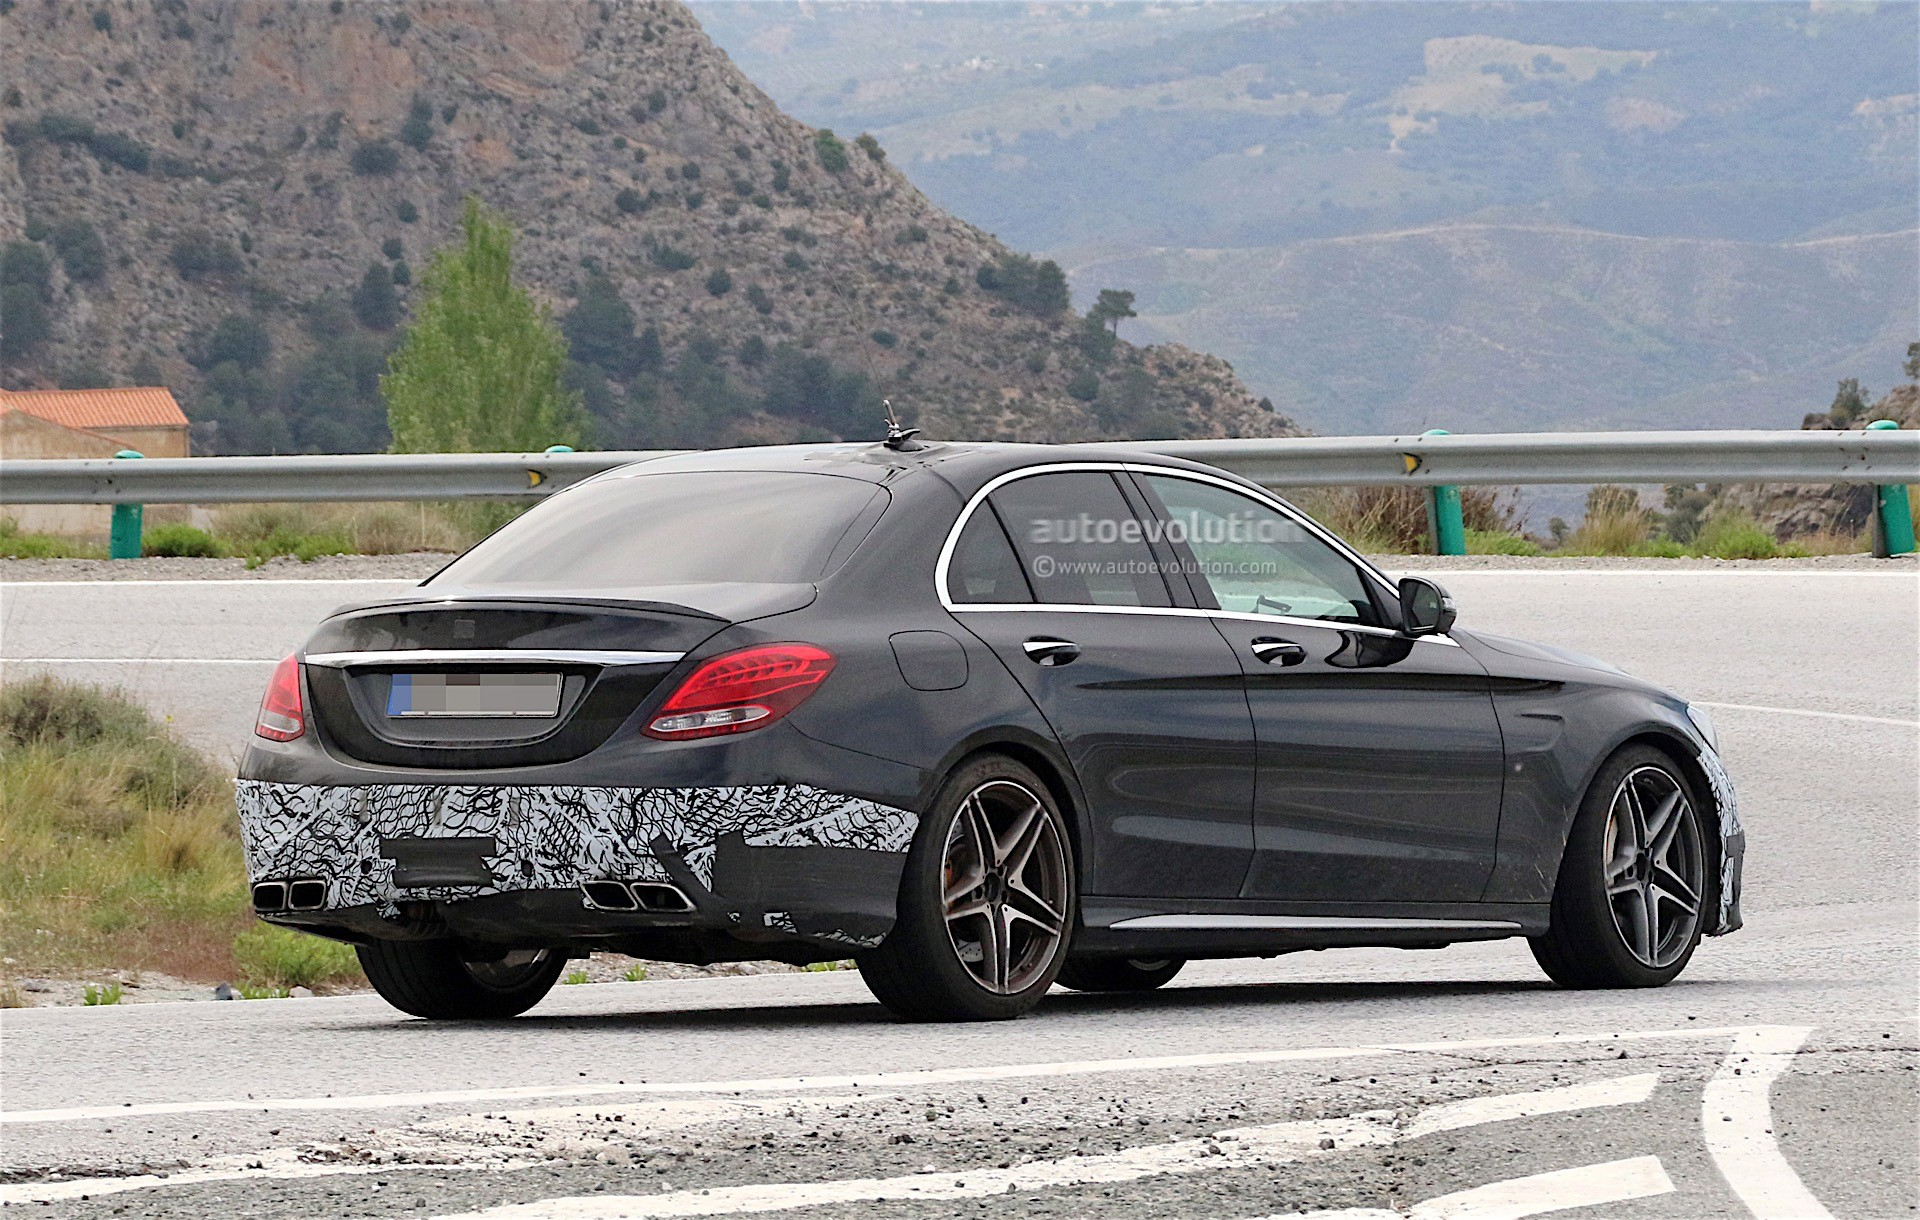 2018 mercedes amg c63 sedan facelift spied testing on. Black Bedroom Furniture Sets. Home Design Ideas